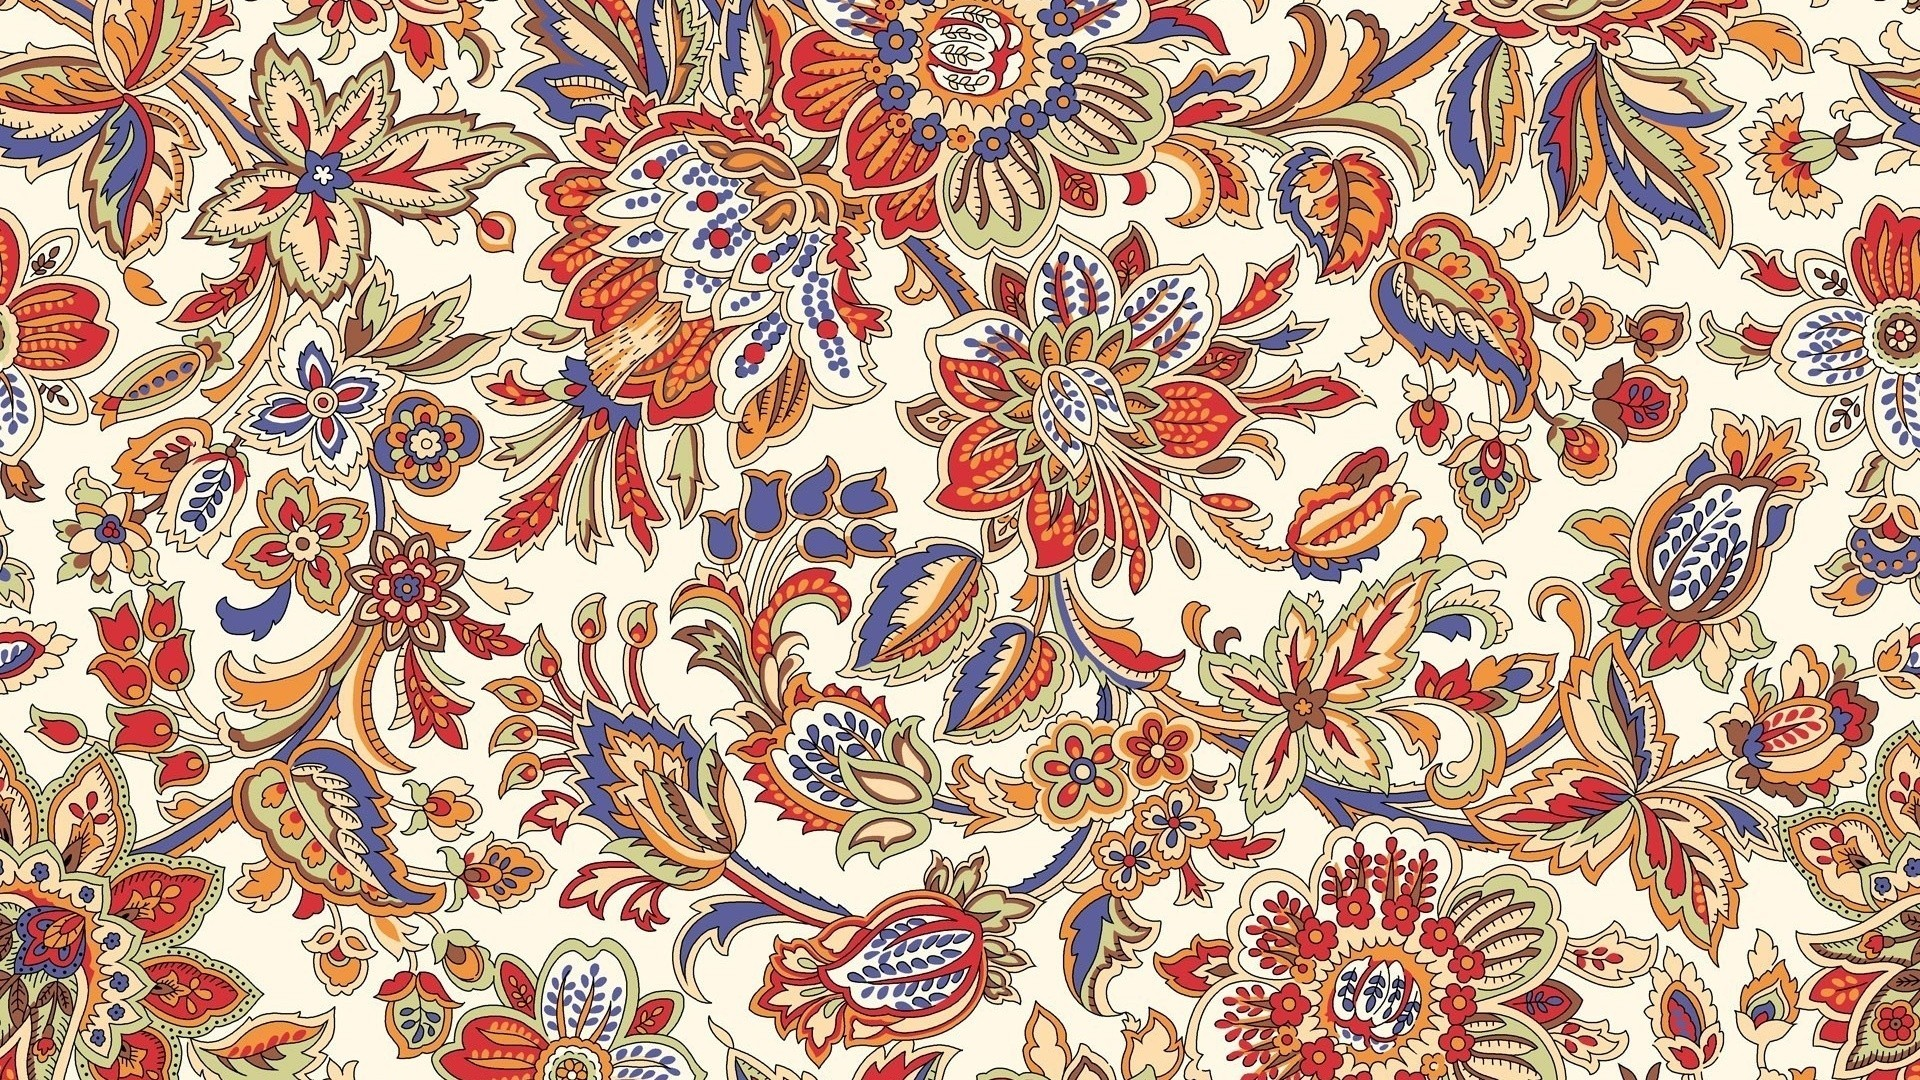 1920x1080 colorful leaves digital art flowers artwork white background pattern  ornamented carpet detailed ART design textile flooring